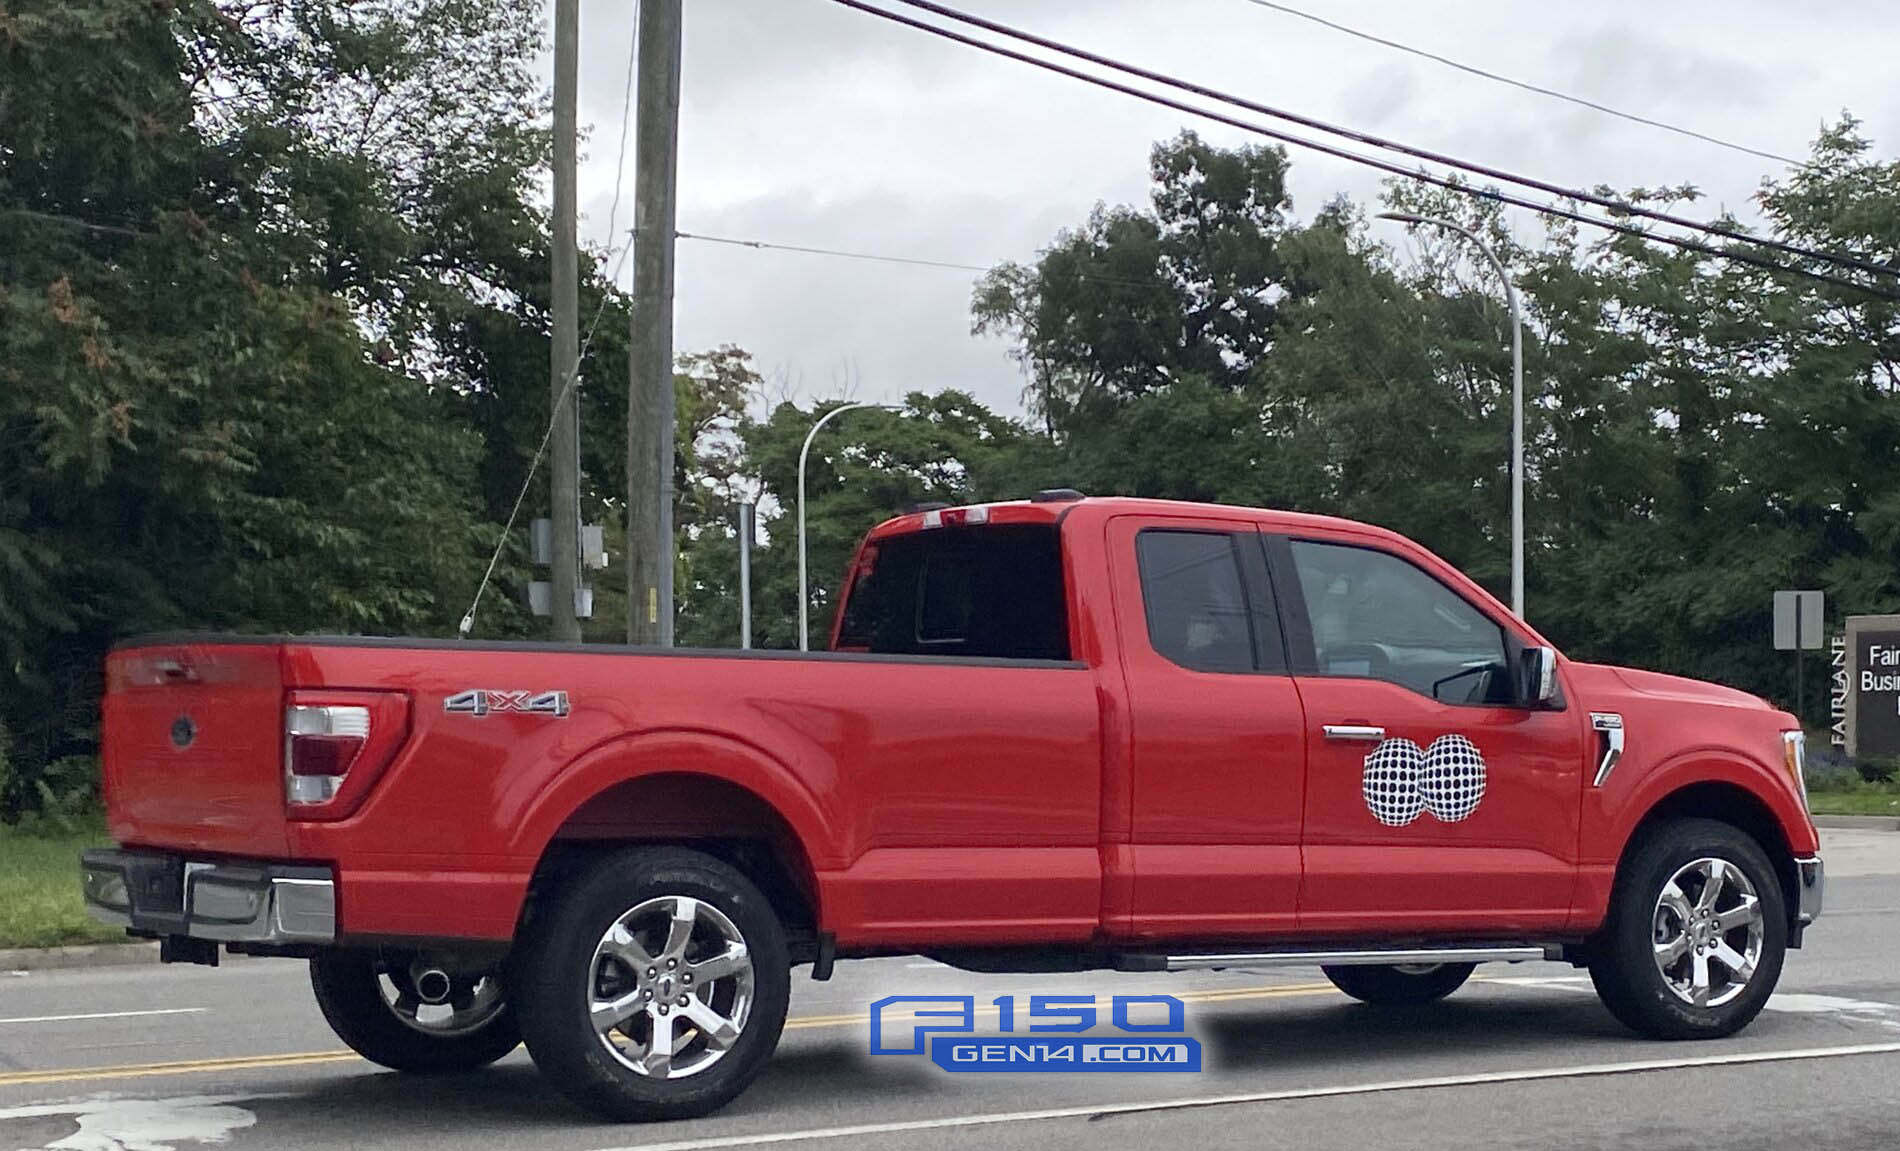 2021 F-150 extended 8 foot bed 20 inch wheels.jpg